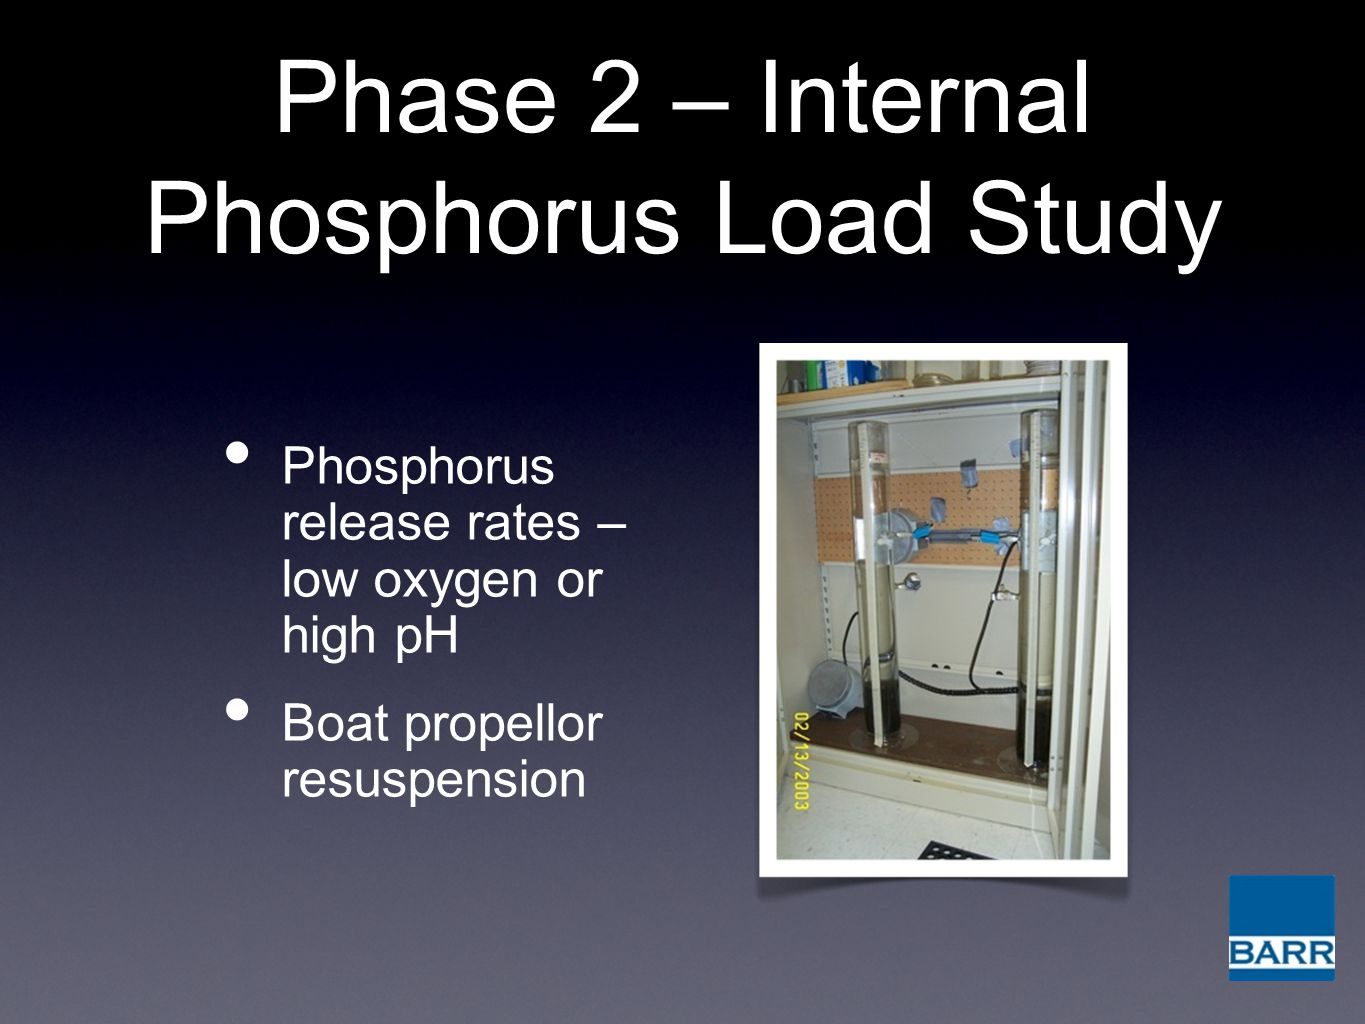 Phase 2 – Internal Phosphorus Load Study Phosphorus release rates – low oxygen or high pH Boat propellor resuspension